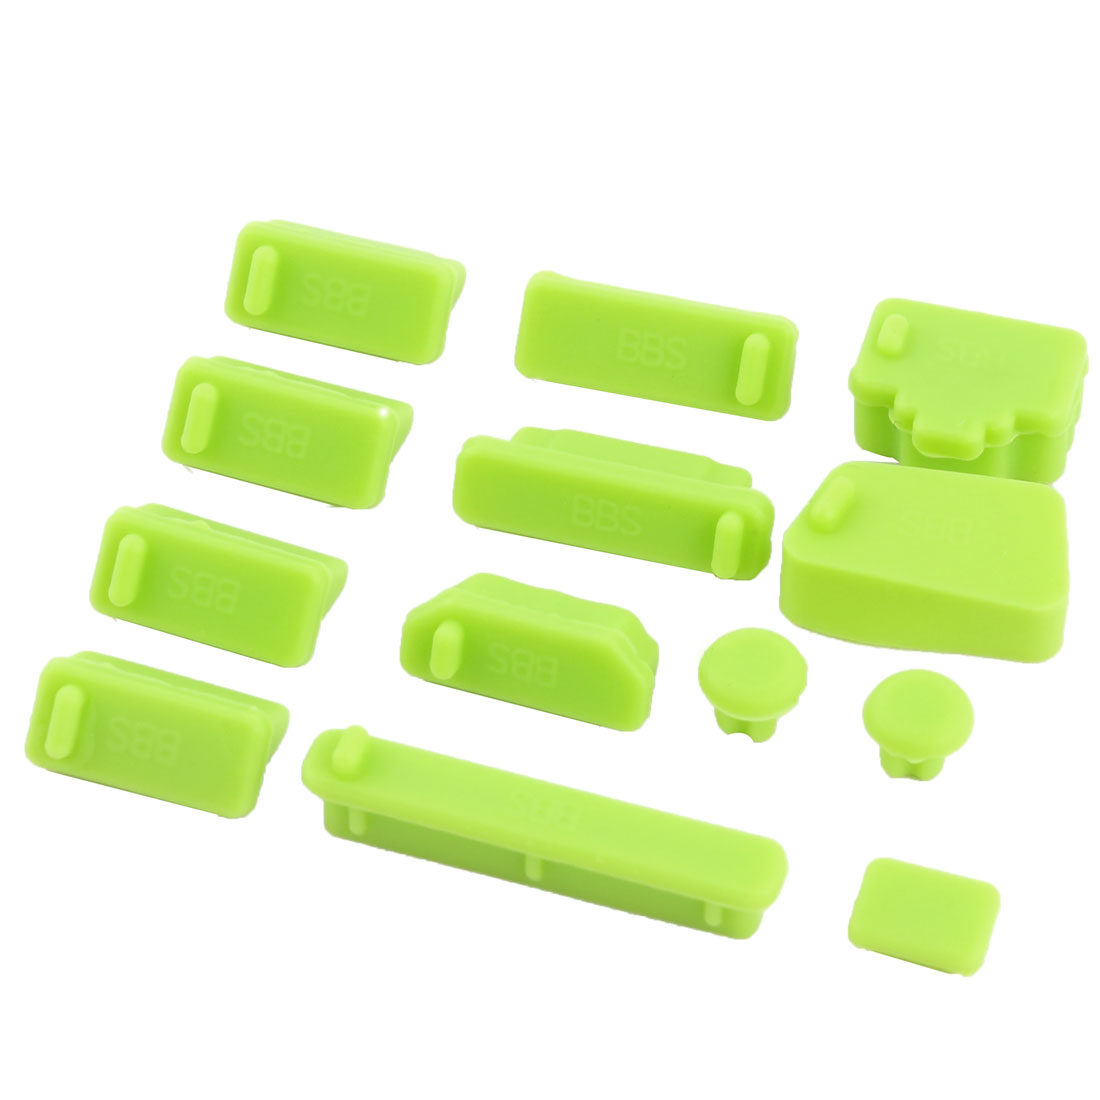 PC Computer Silicone Universal Non-Slip Dust Stopper Cover Notebook Anti Dust Connector Set Green 13 in 1